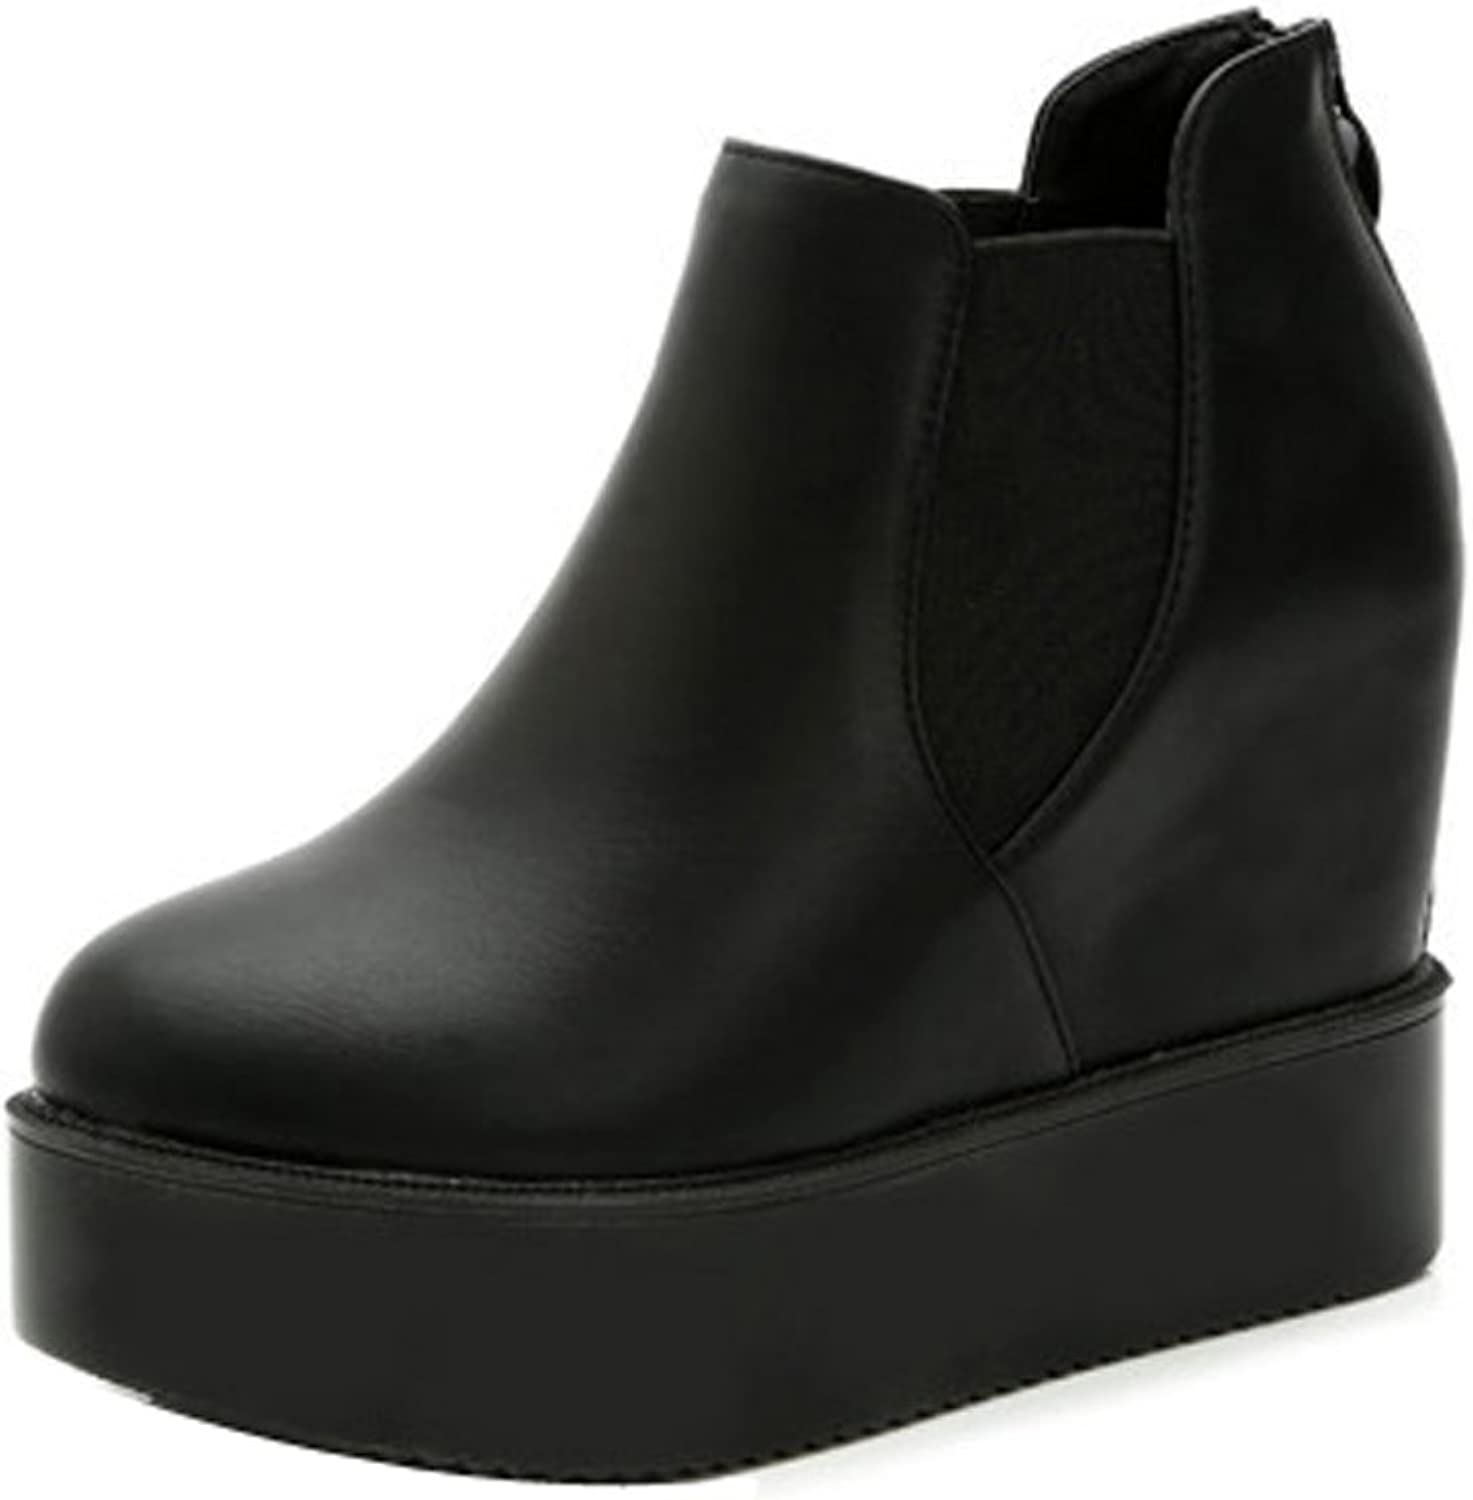 Ladola Womens Wedges Light-Weight Closed-Toe Urethane Boots